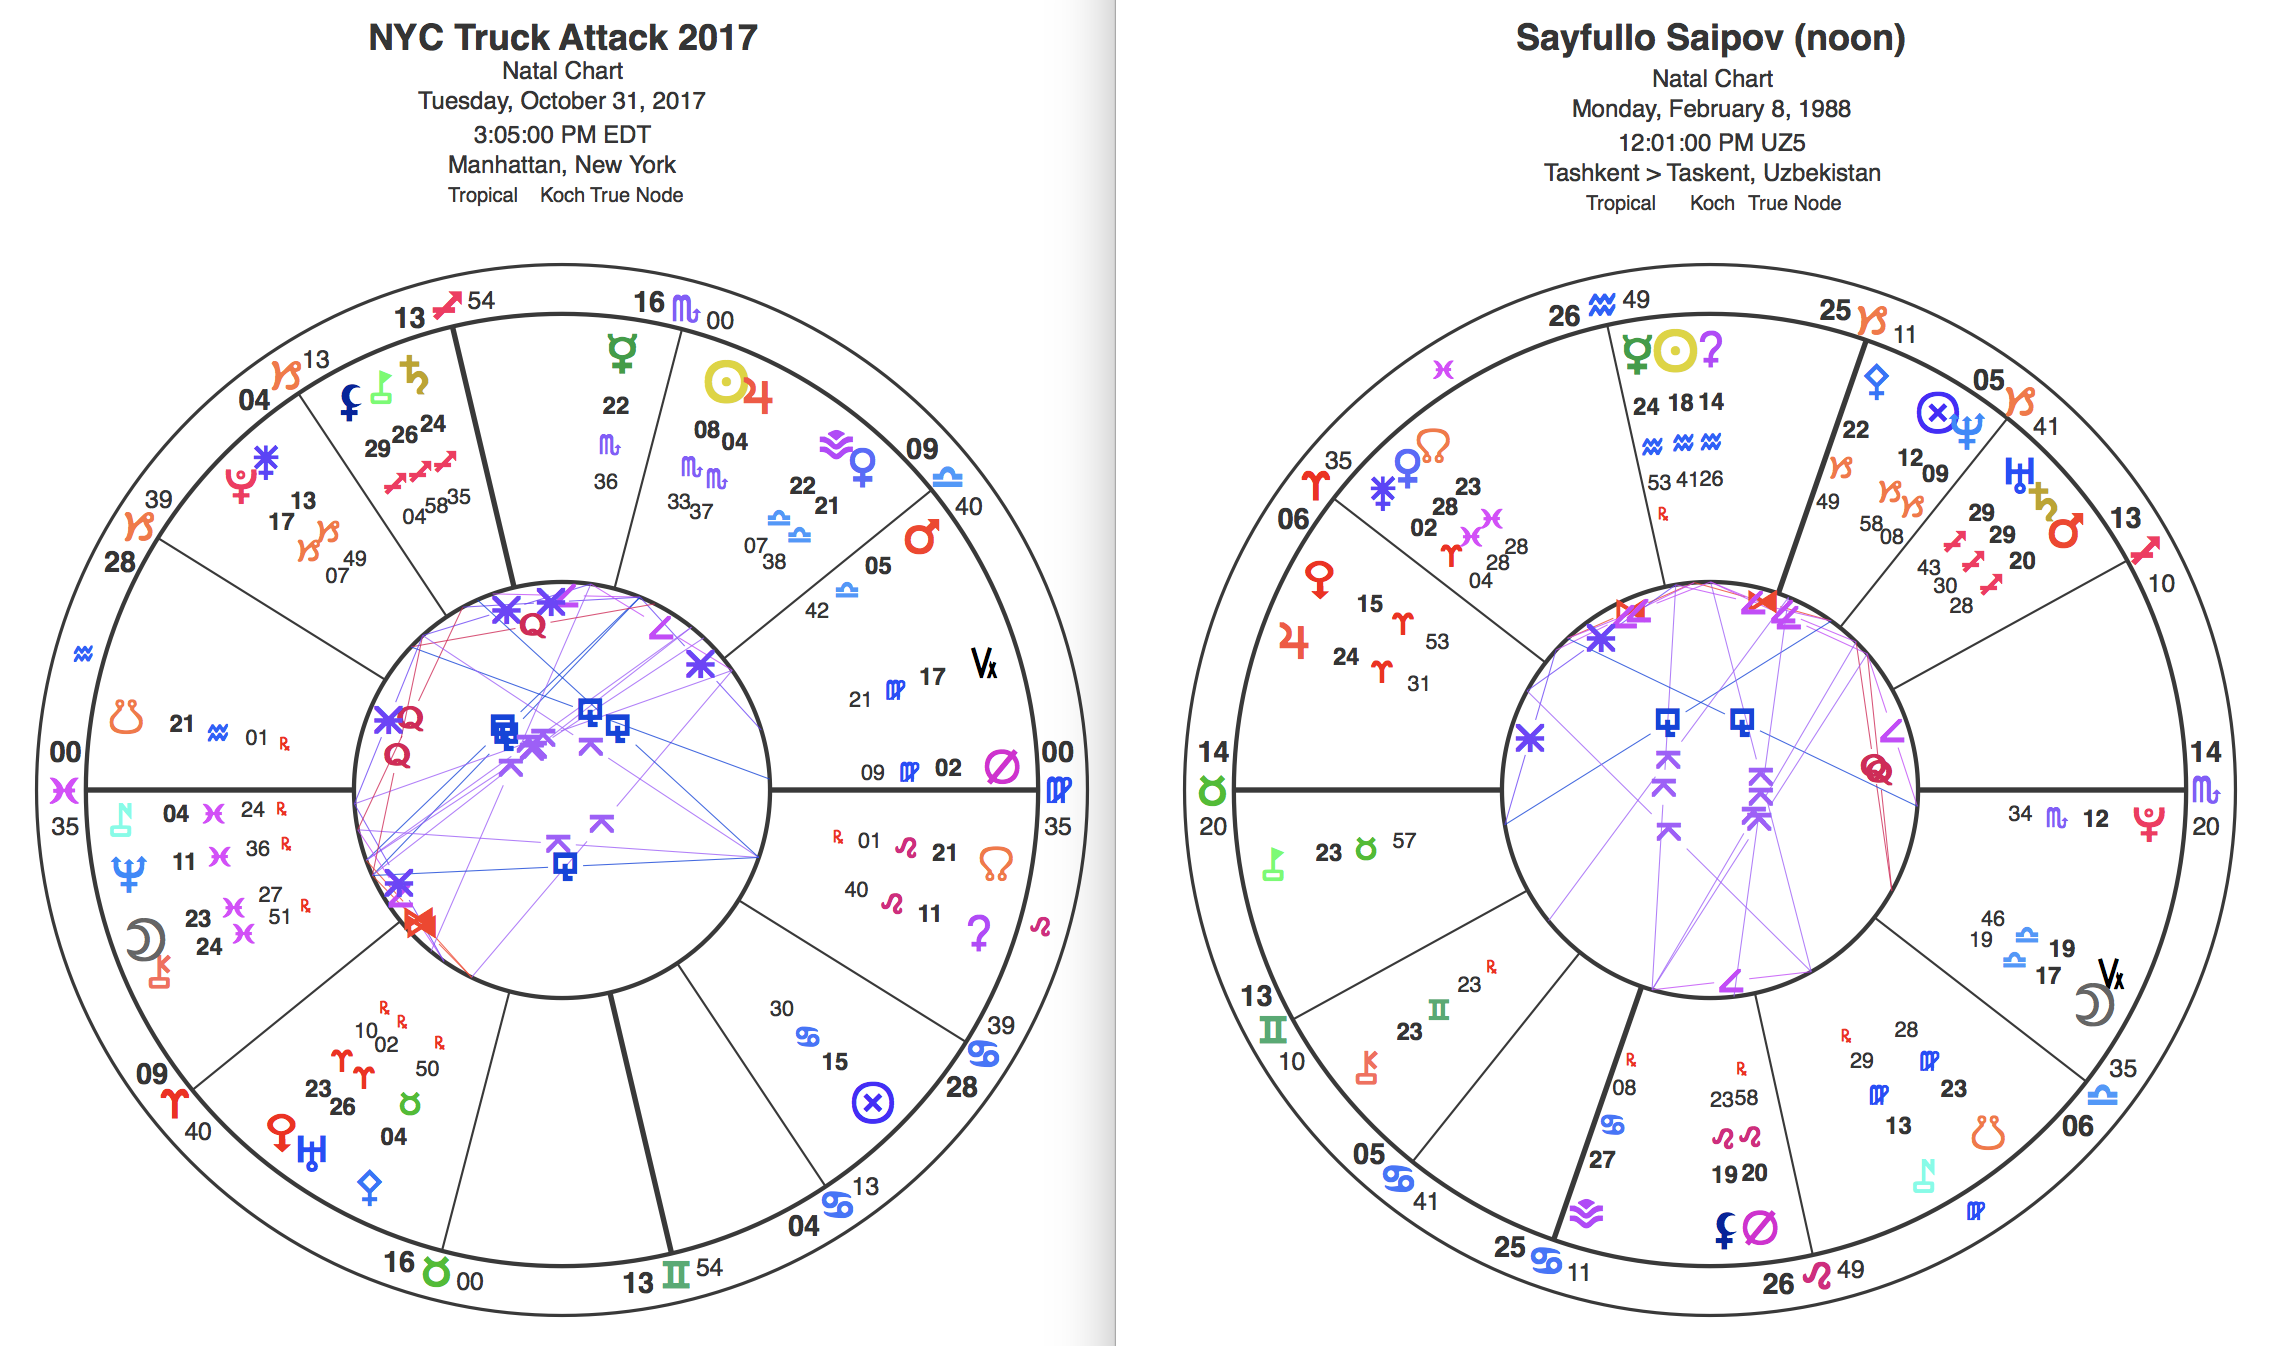 Charts for the Halloween truck attack and its suspect, Sayfullo Saipov.